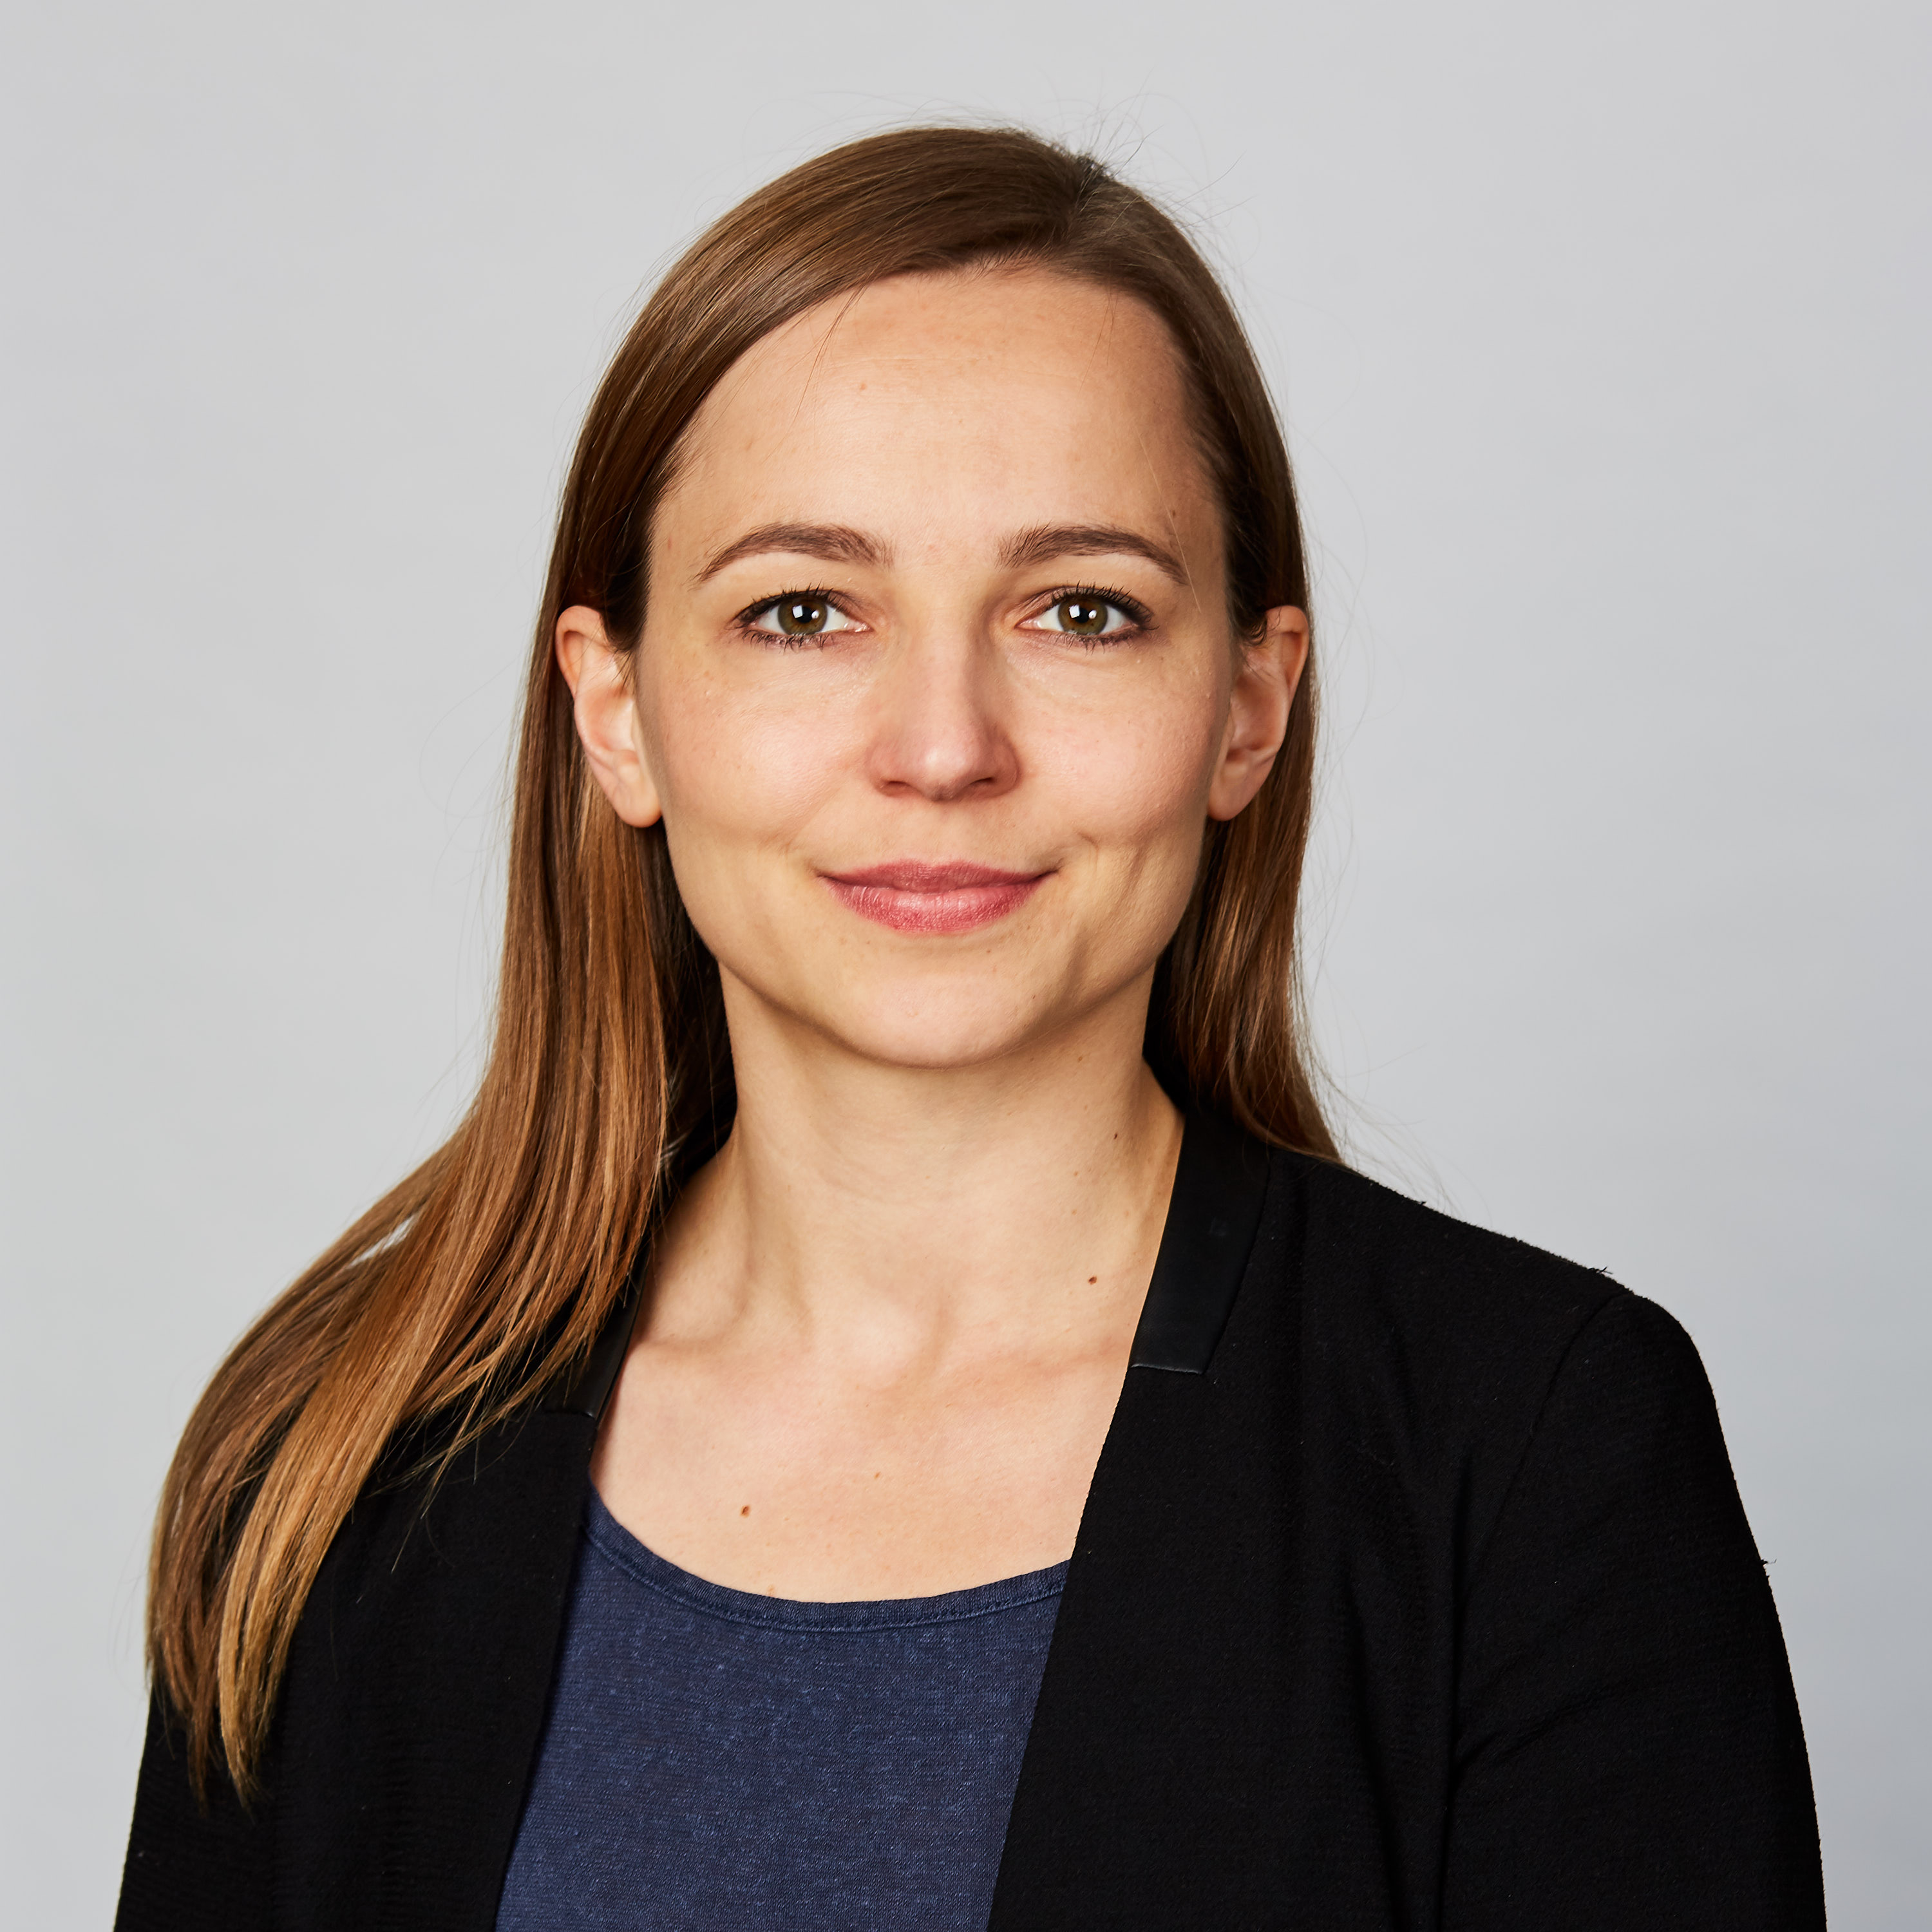 picture of evy rombaut - senior researcher at mobi